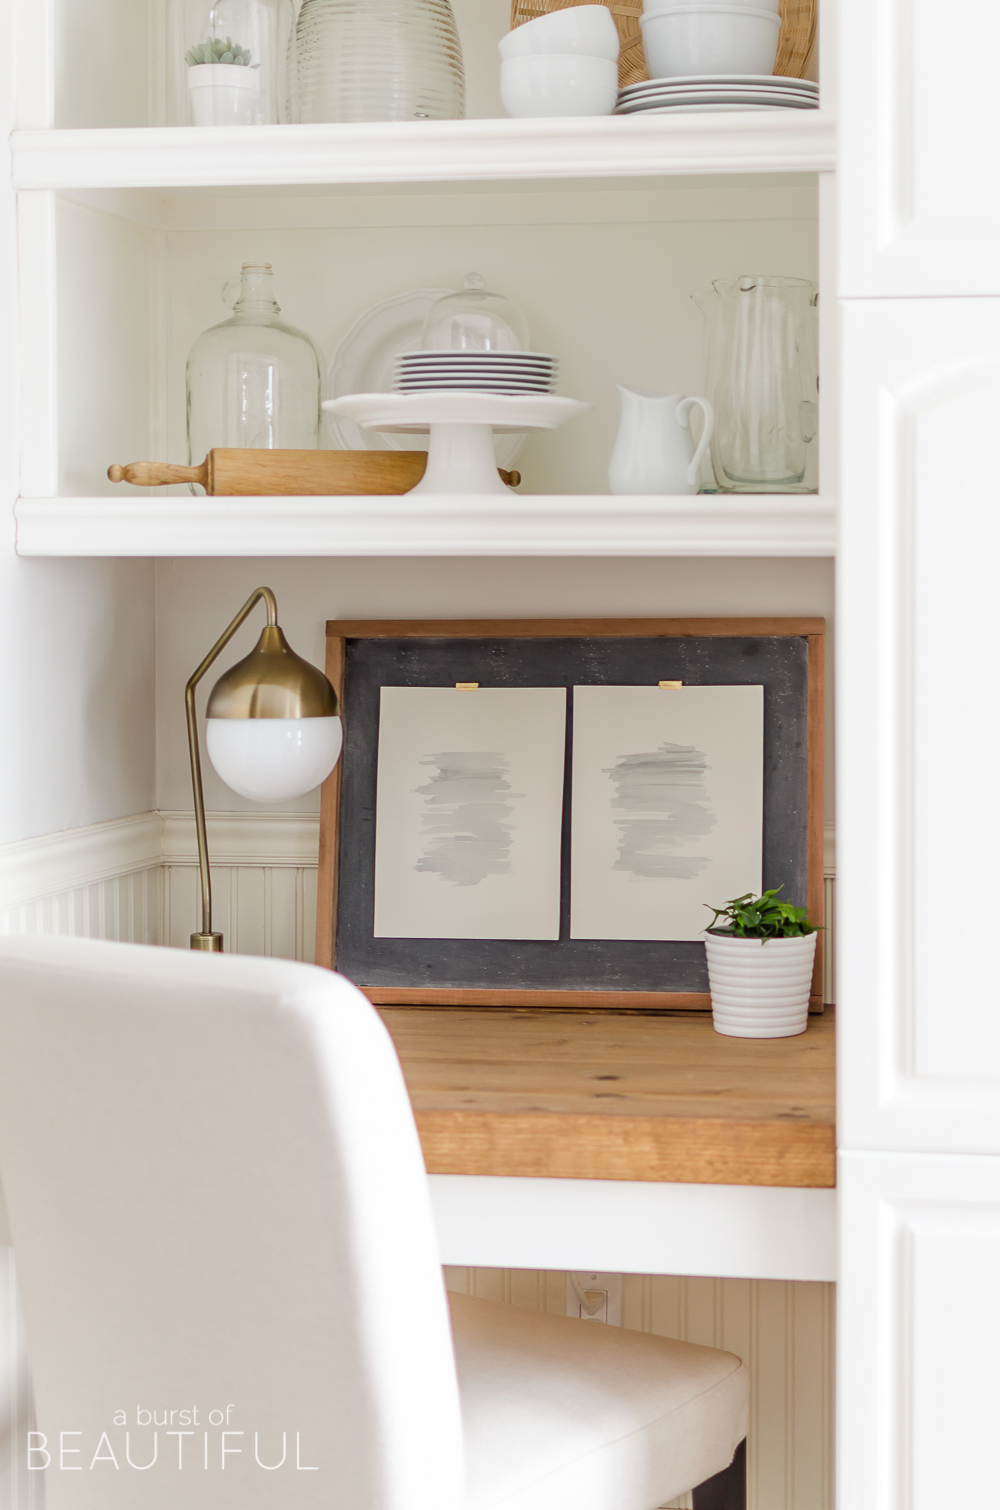 A Diy Floating Desk With Storage Adds Beautiful Touch To This Modern Farmhouse Kitchen